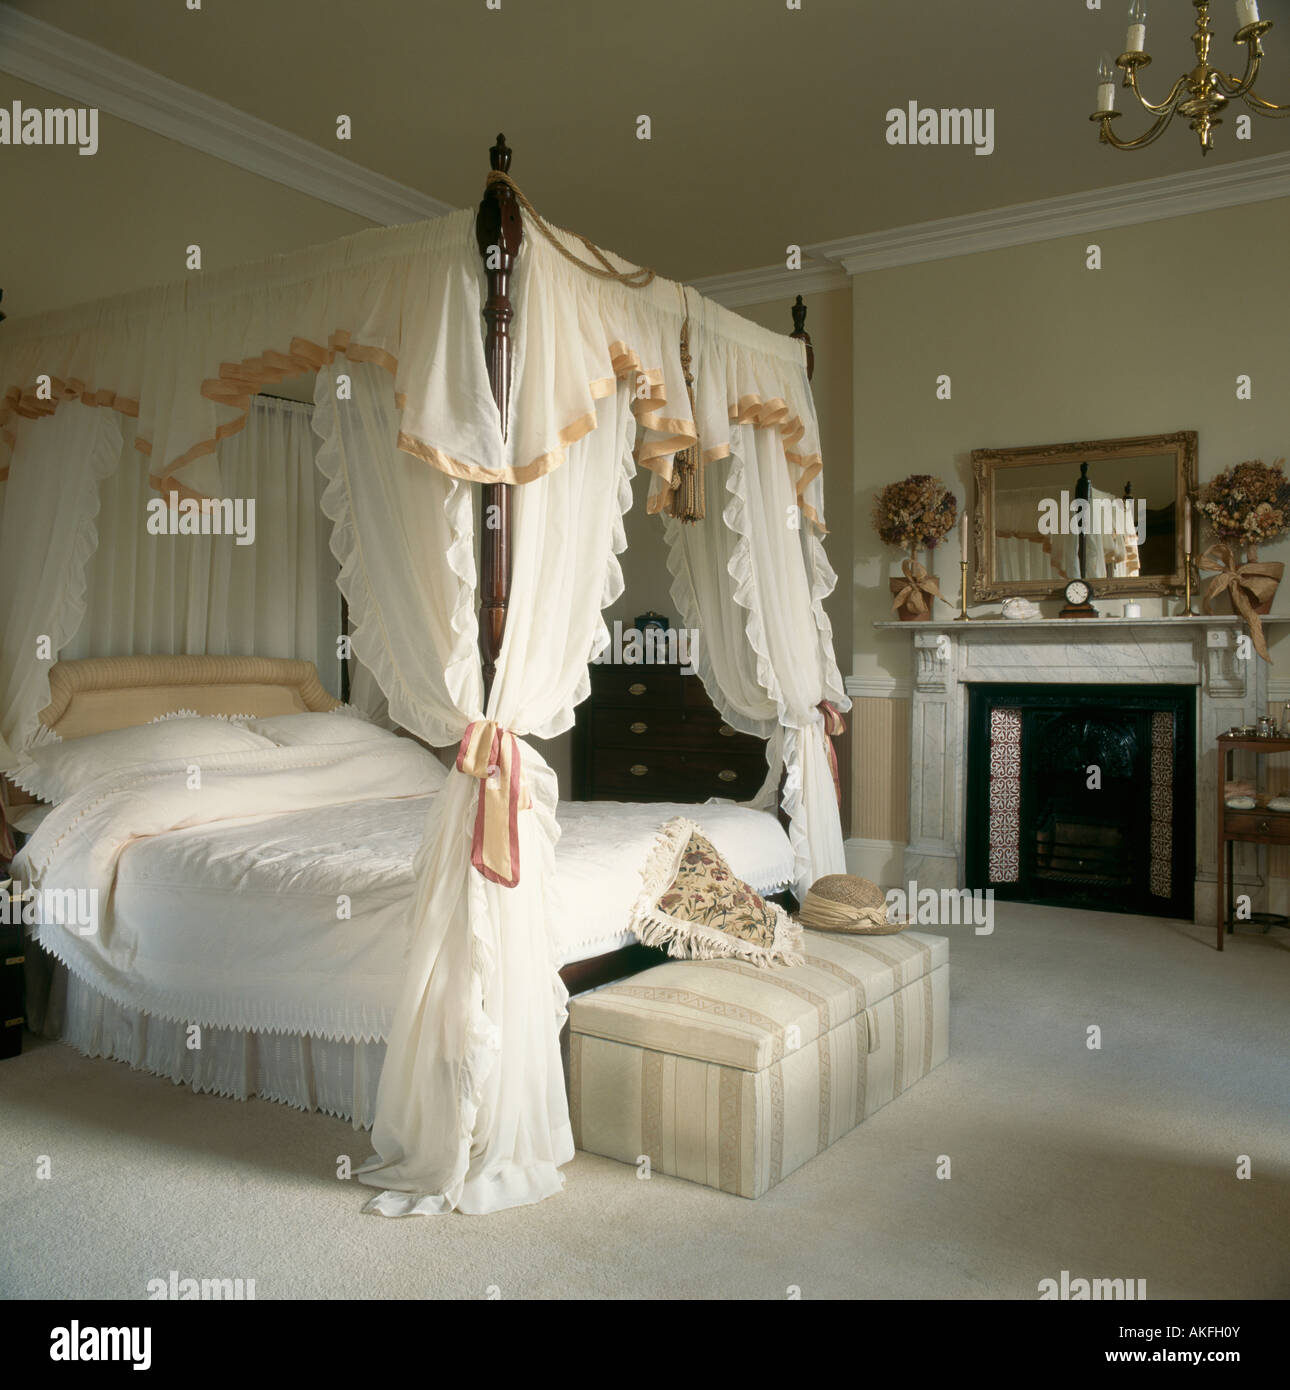 Silk edged white canopy and curtains on four poster bed with white linen in  bedroom with fireplace and grey carpet